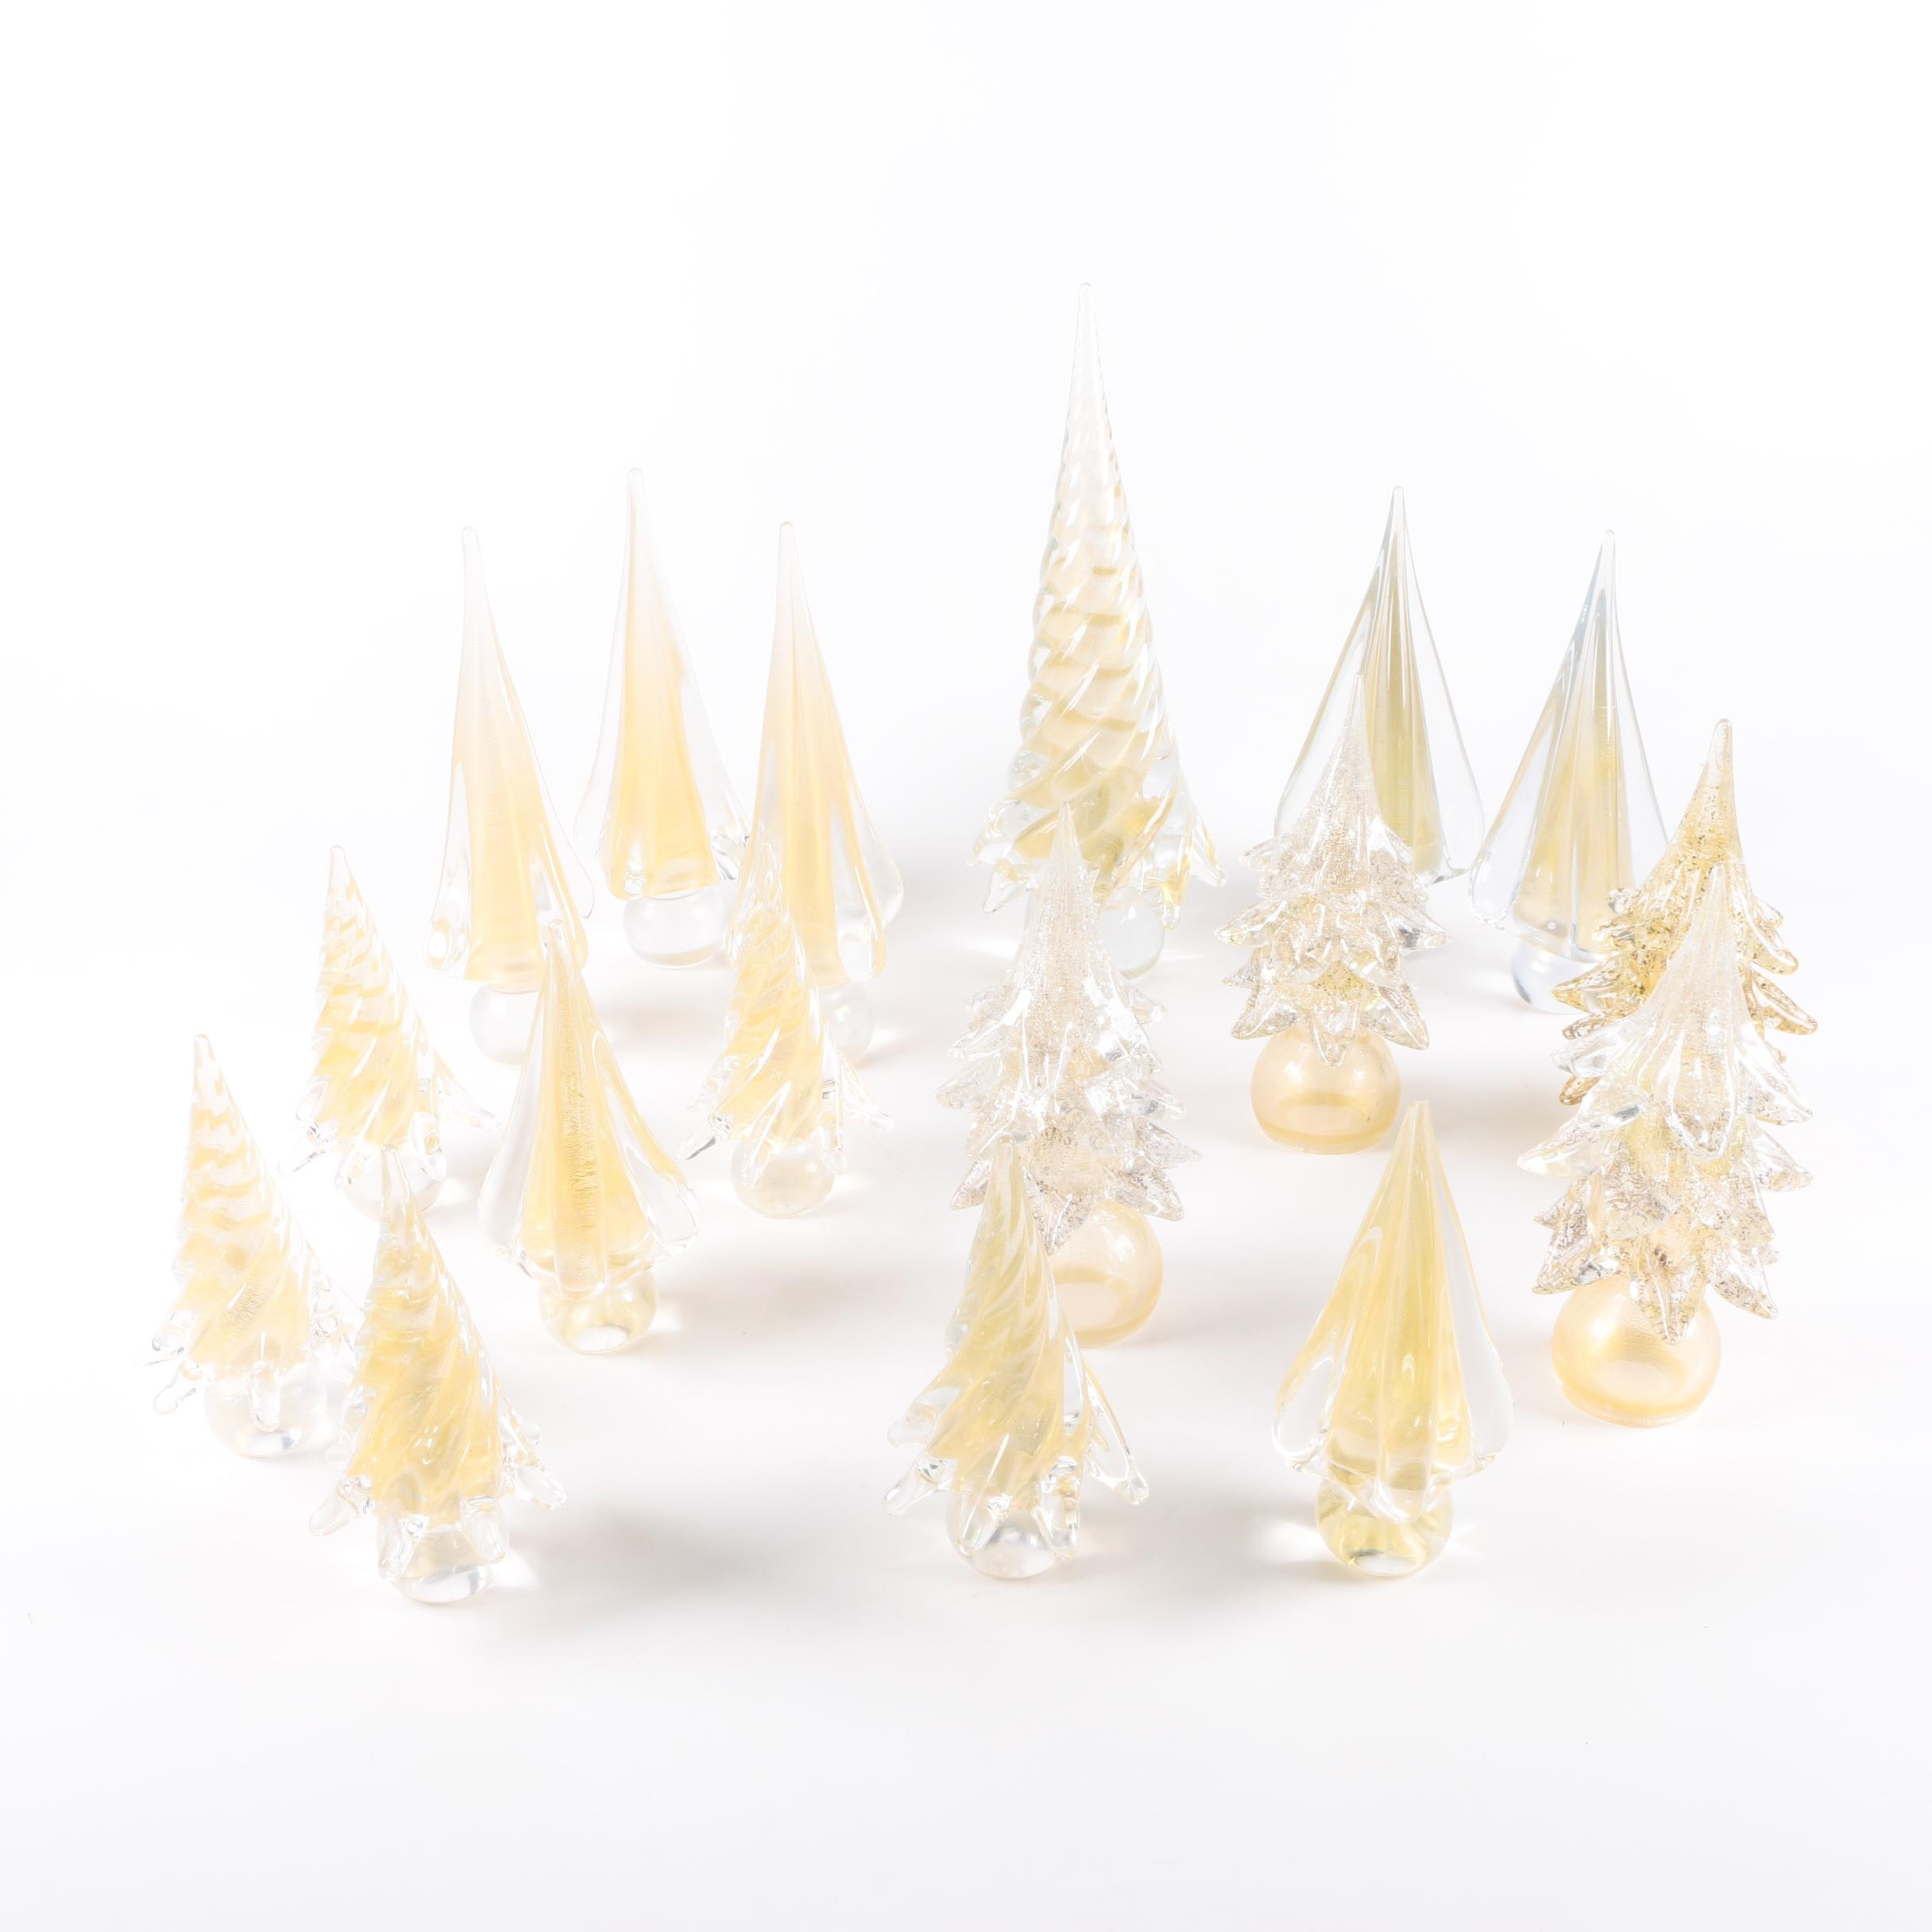 Selection of Glass and Gold Christmas Trees